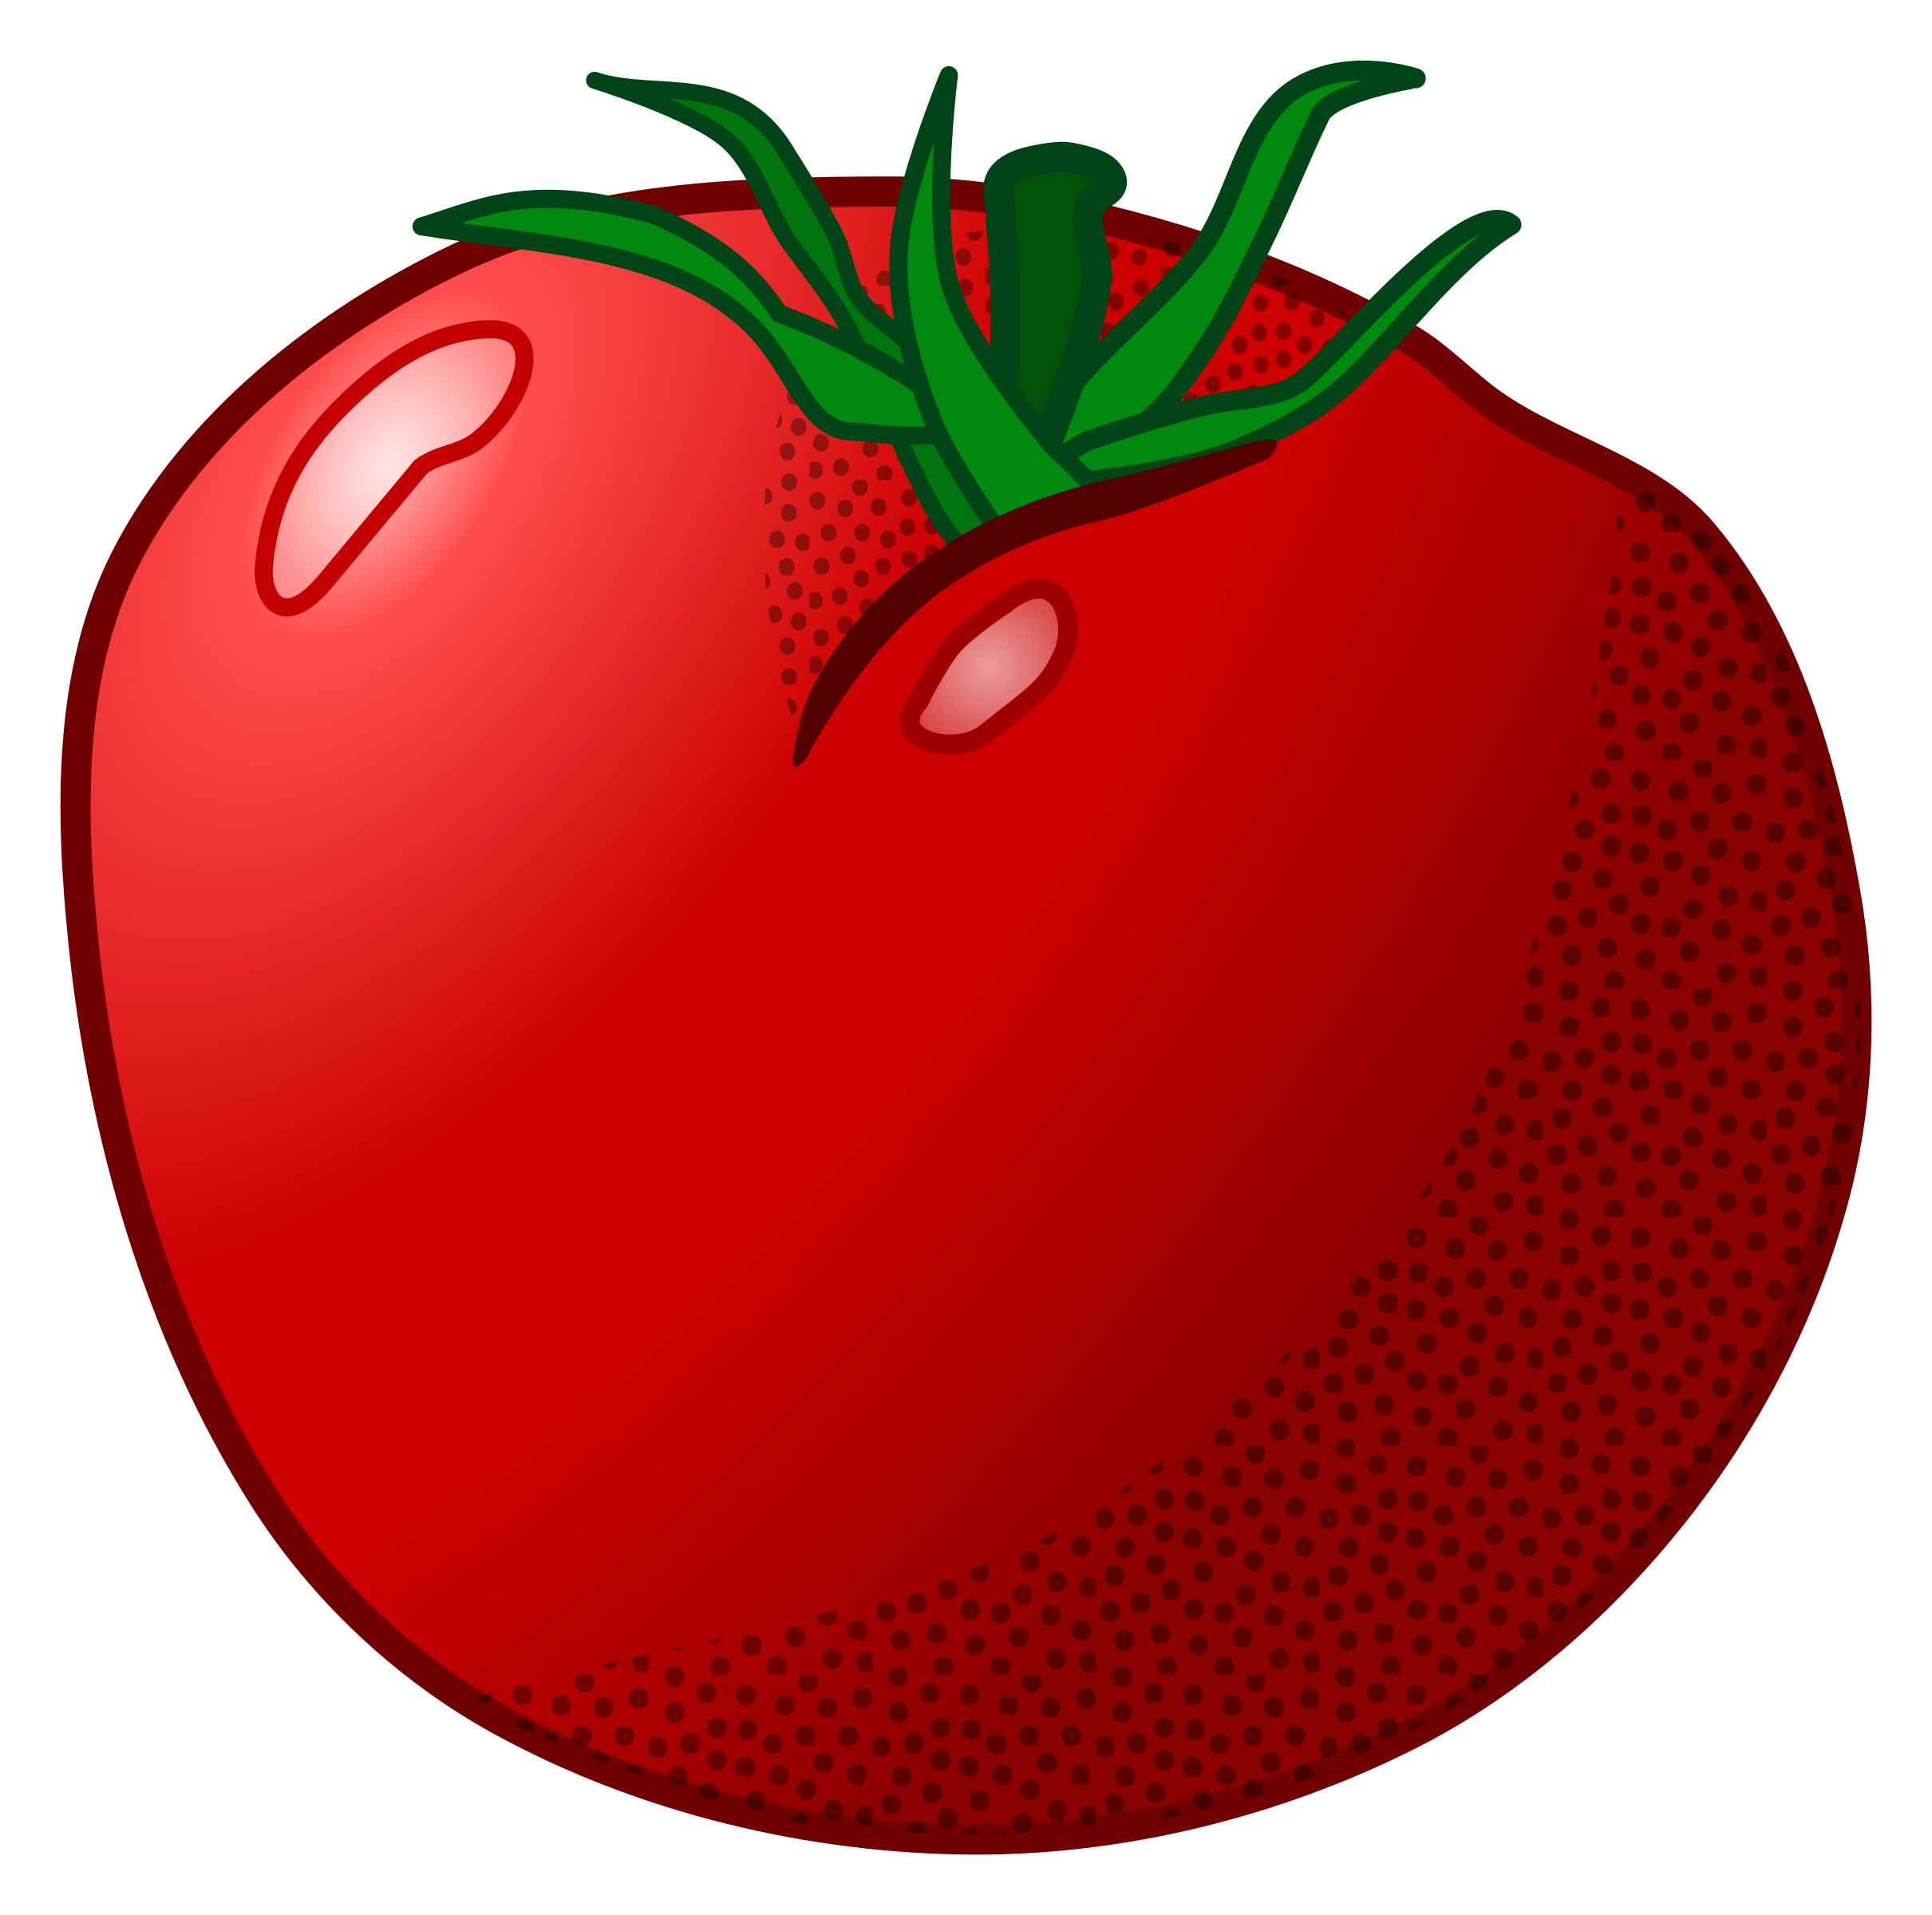 tomatoes drawing bob